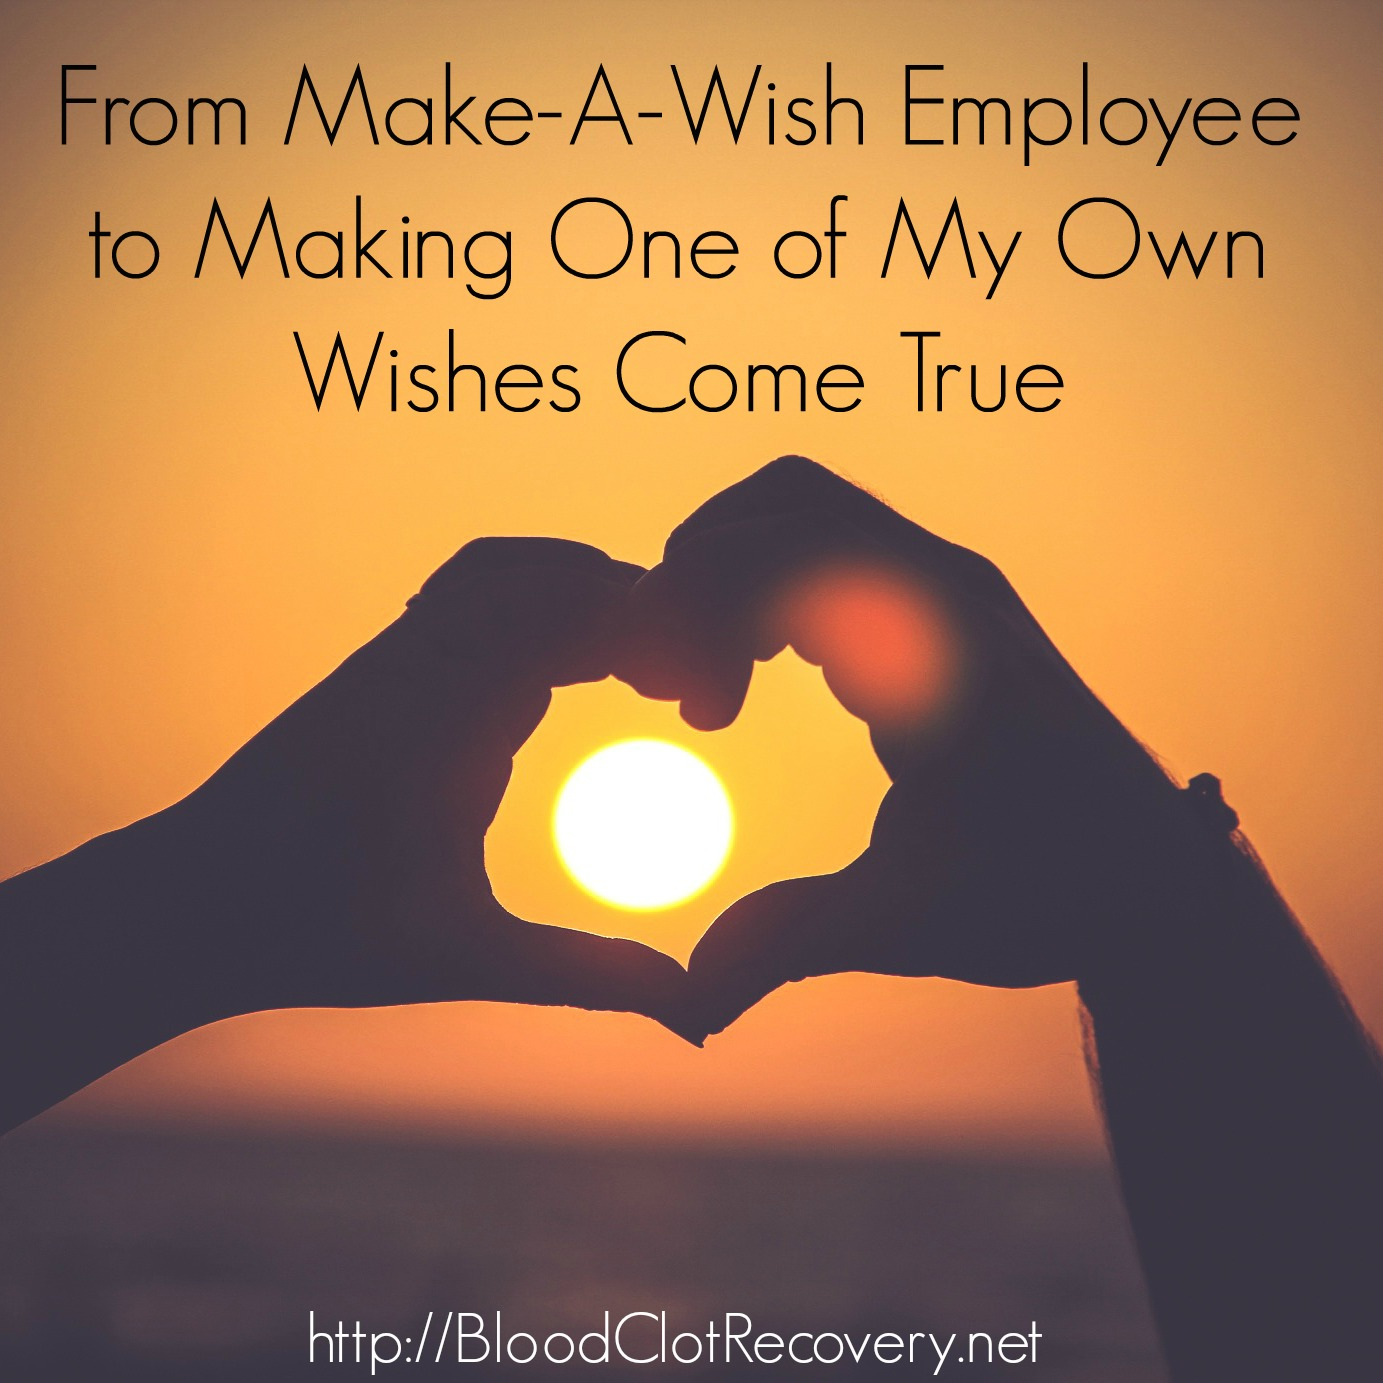 how to make wishes come true in 1 day